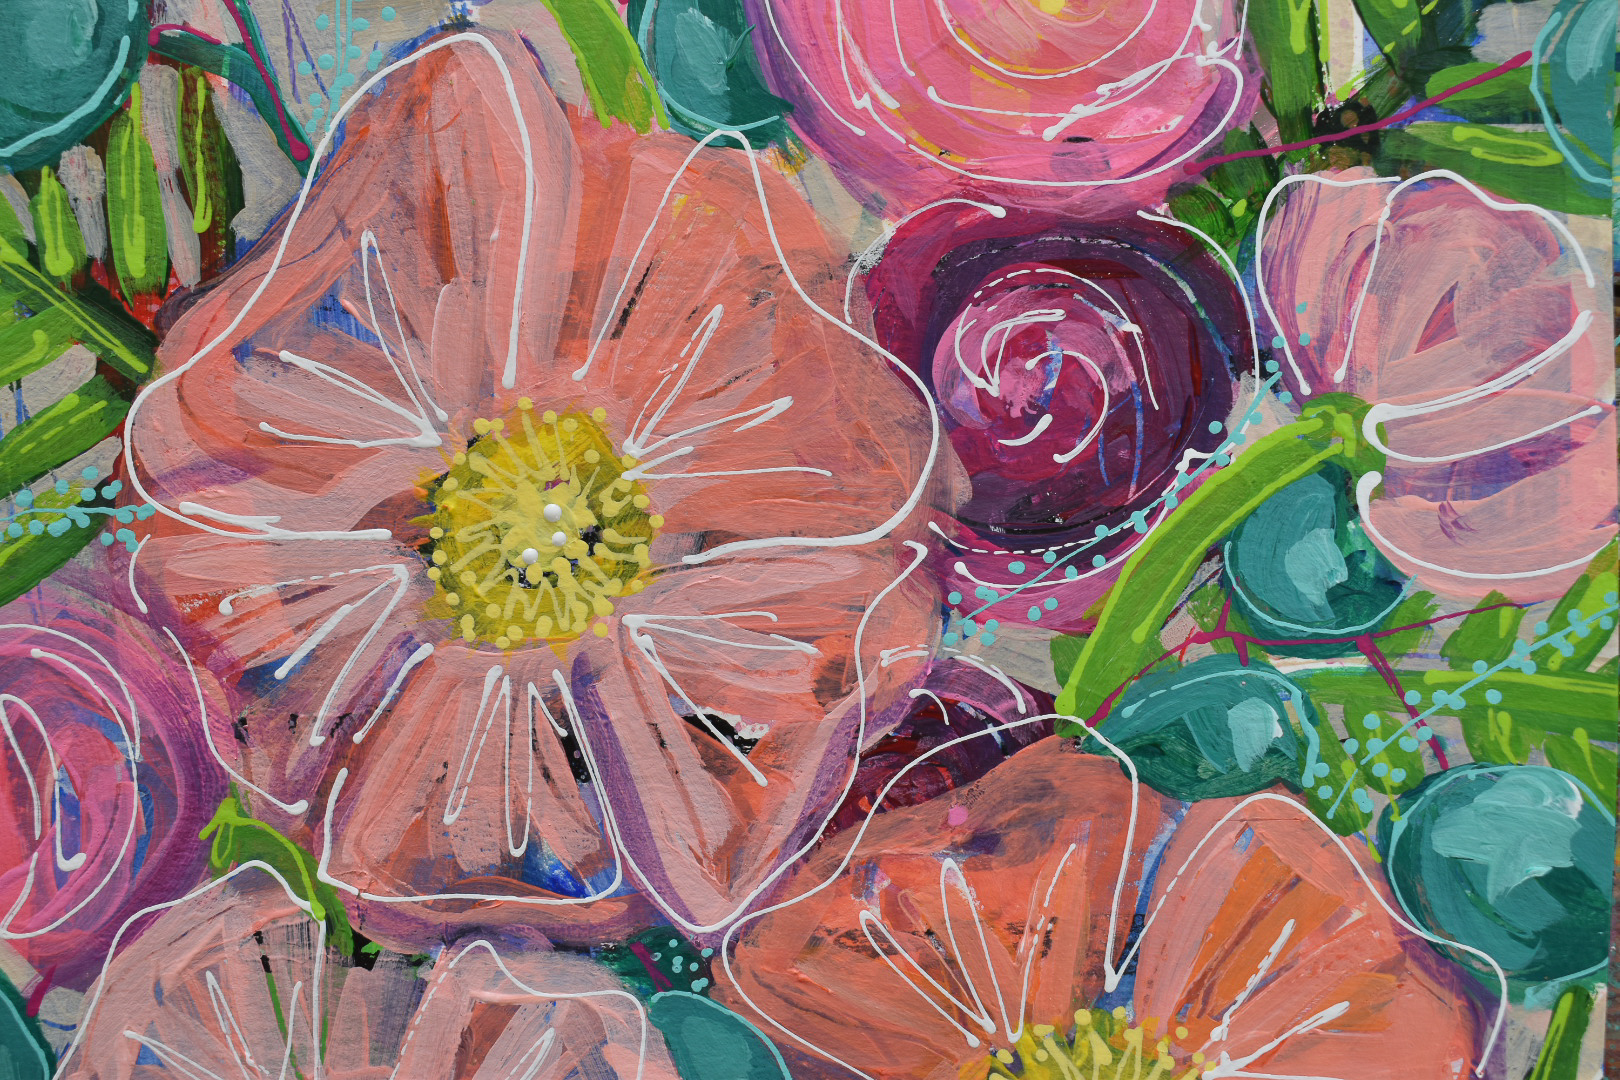 bohopainting_poppies_daisyfaithart_abstract6.jpg